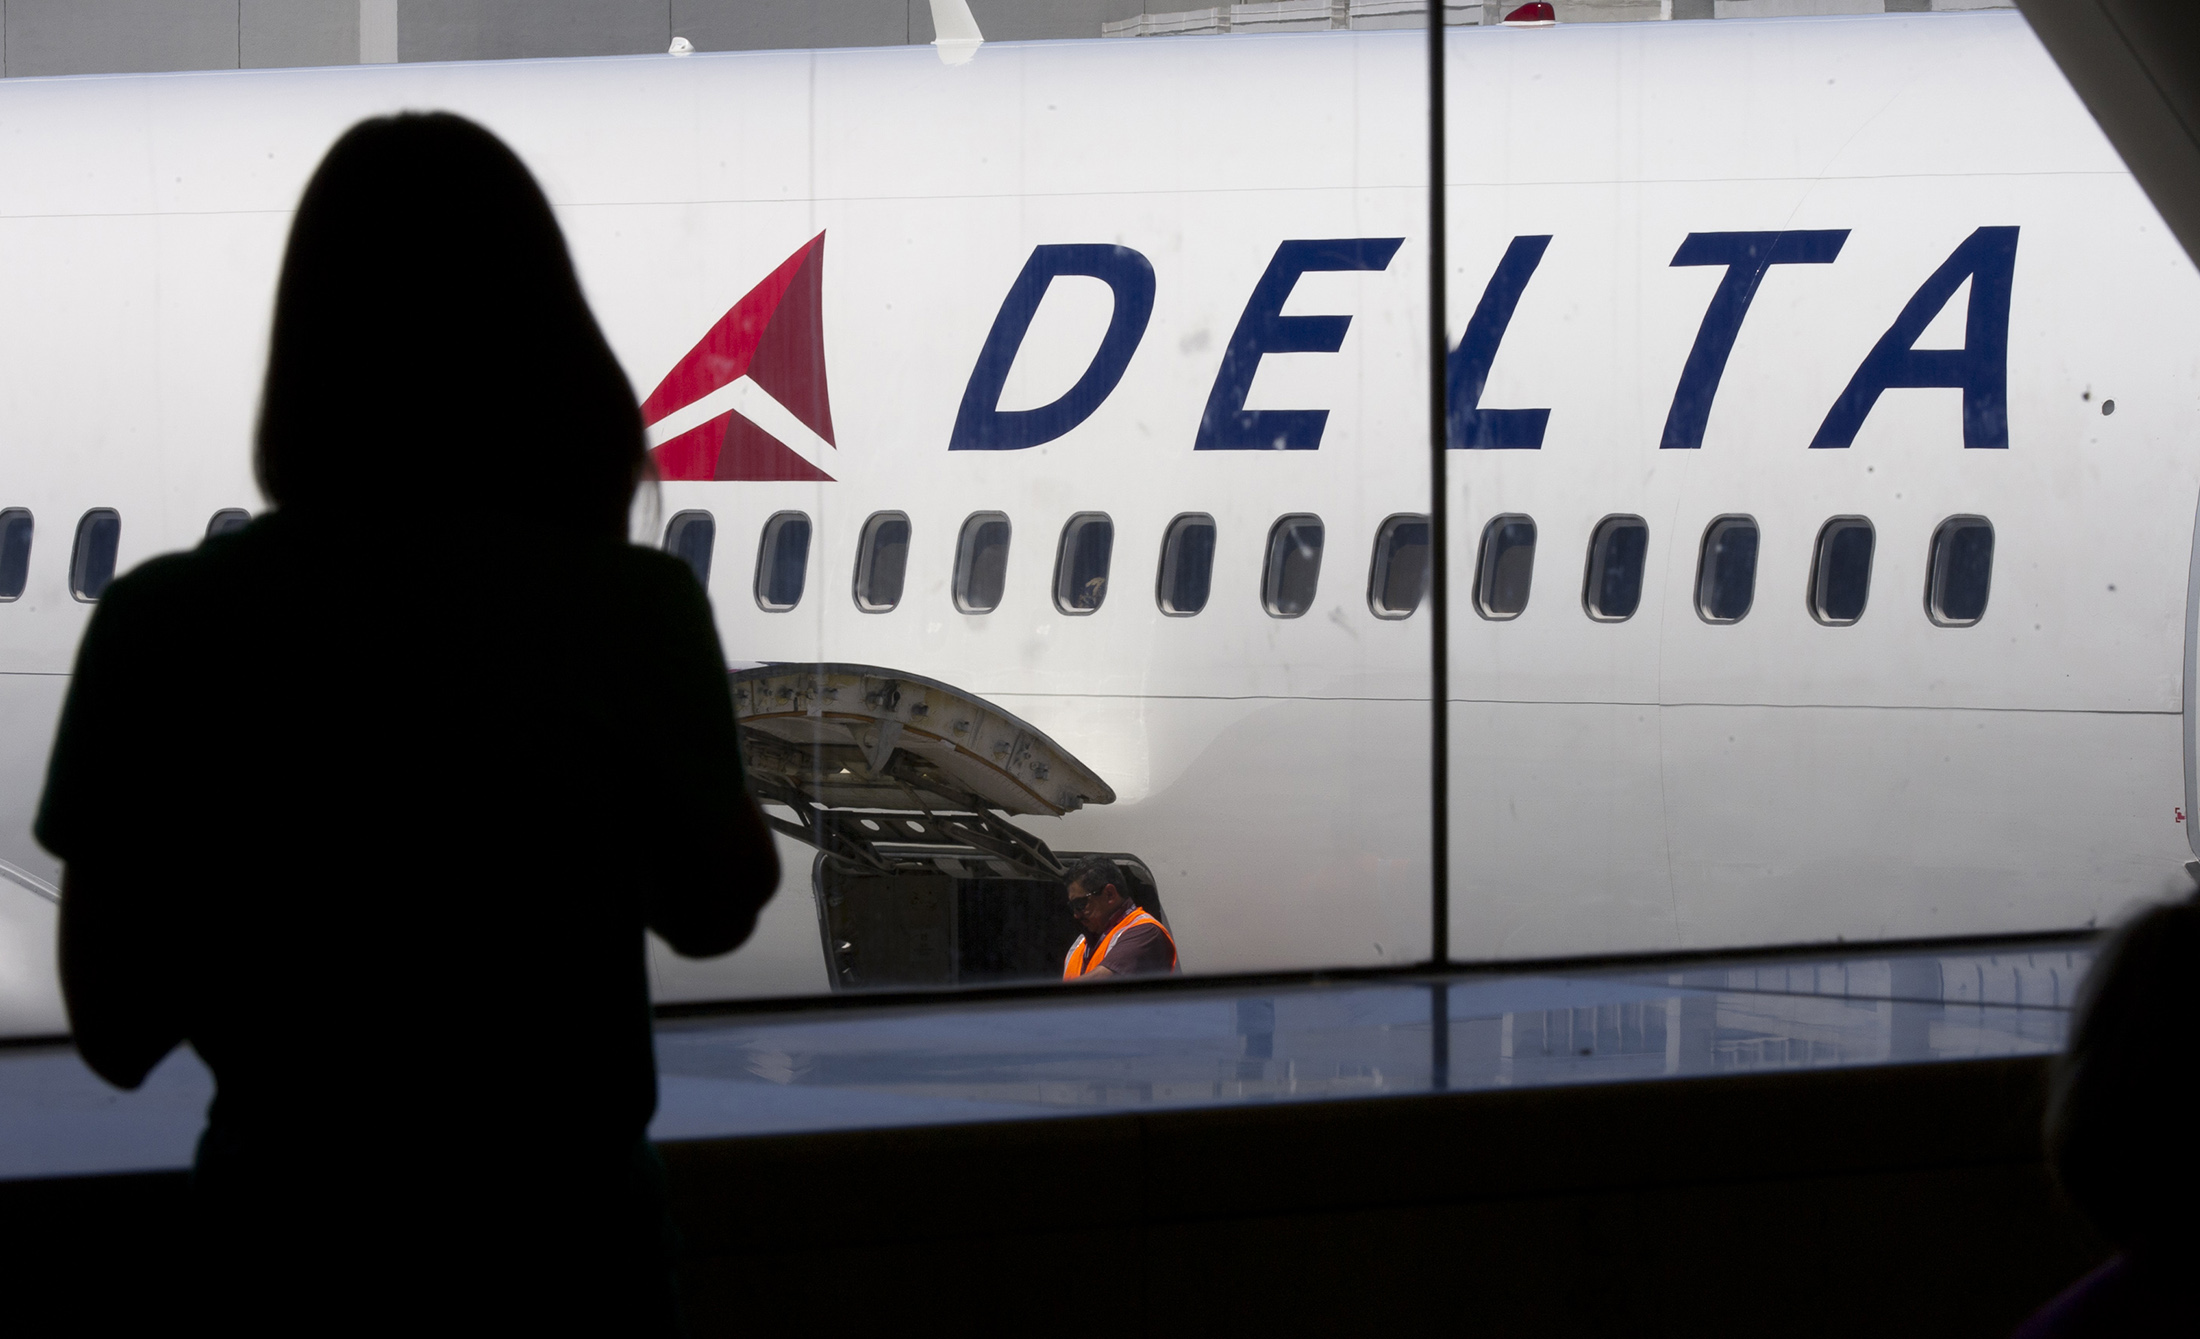 Berkshire Bets on Airlines With Stakes in American, Delta - Bloomberg